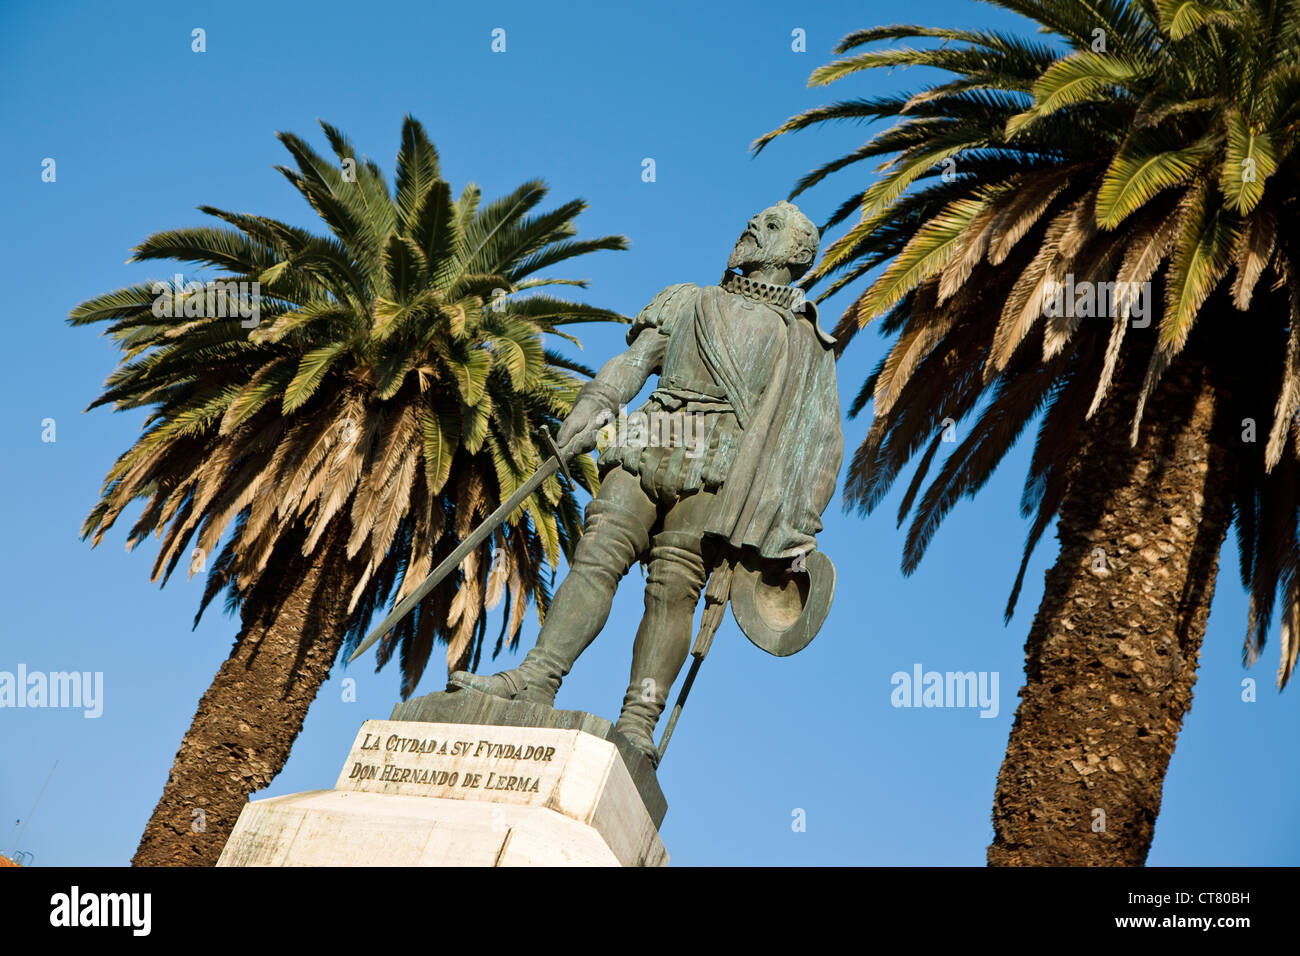 Statue of Hernando de Lerma by Angel Ibarra in the Plaza General Guemes - Stock Image